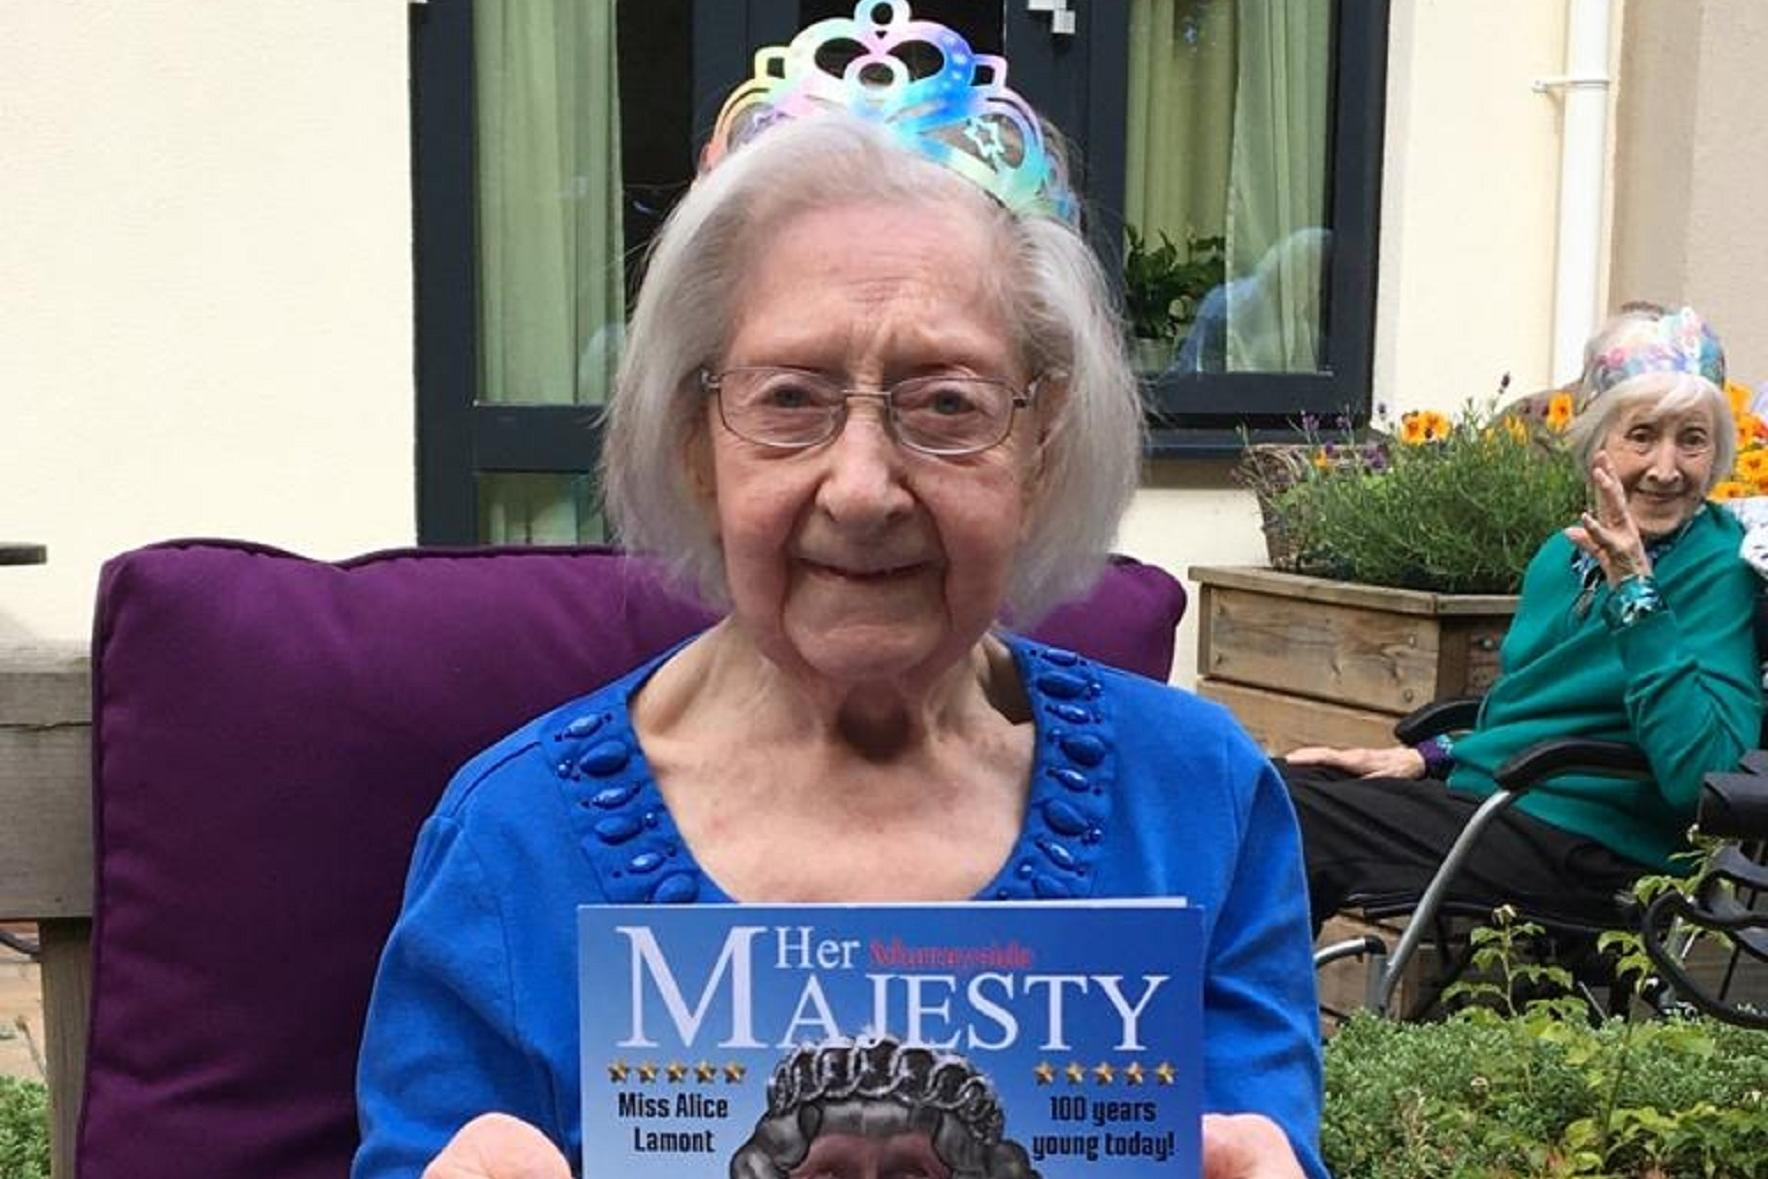 Edinburgh care home resident is treated like a queen on her 100th birthday